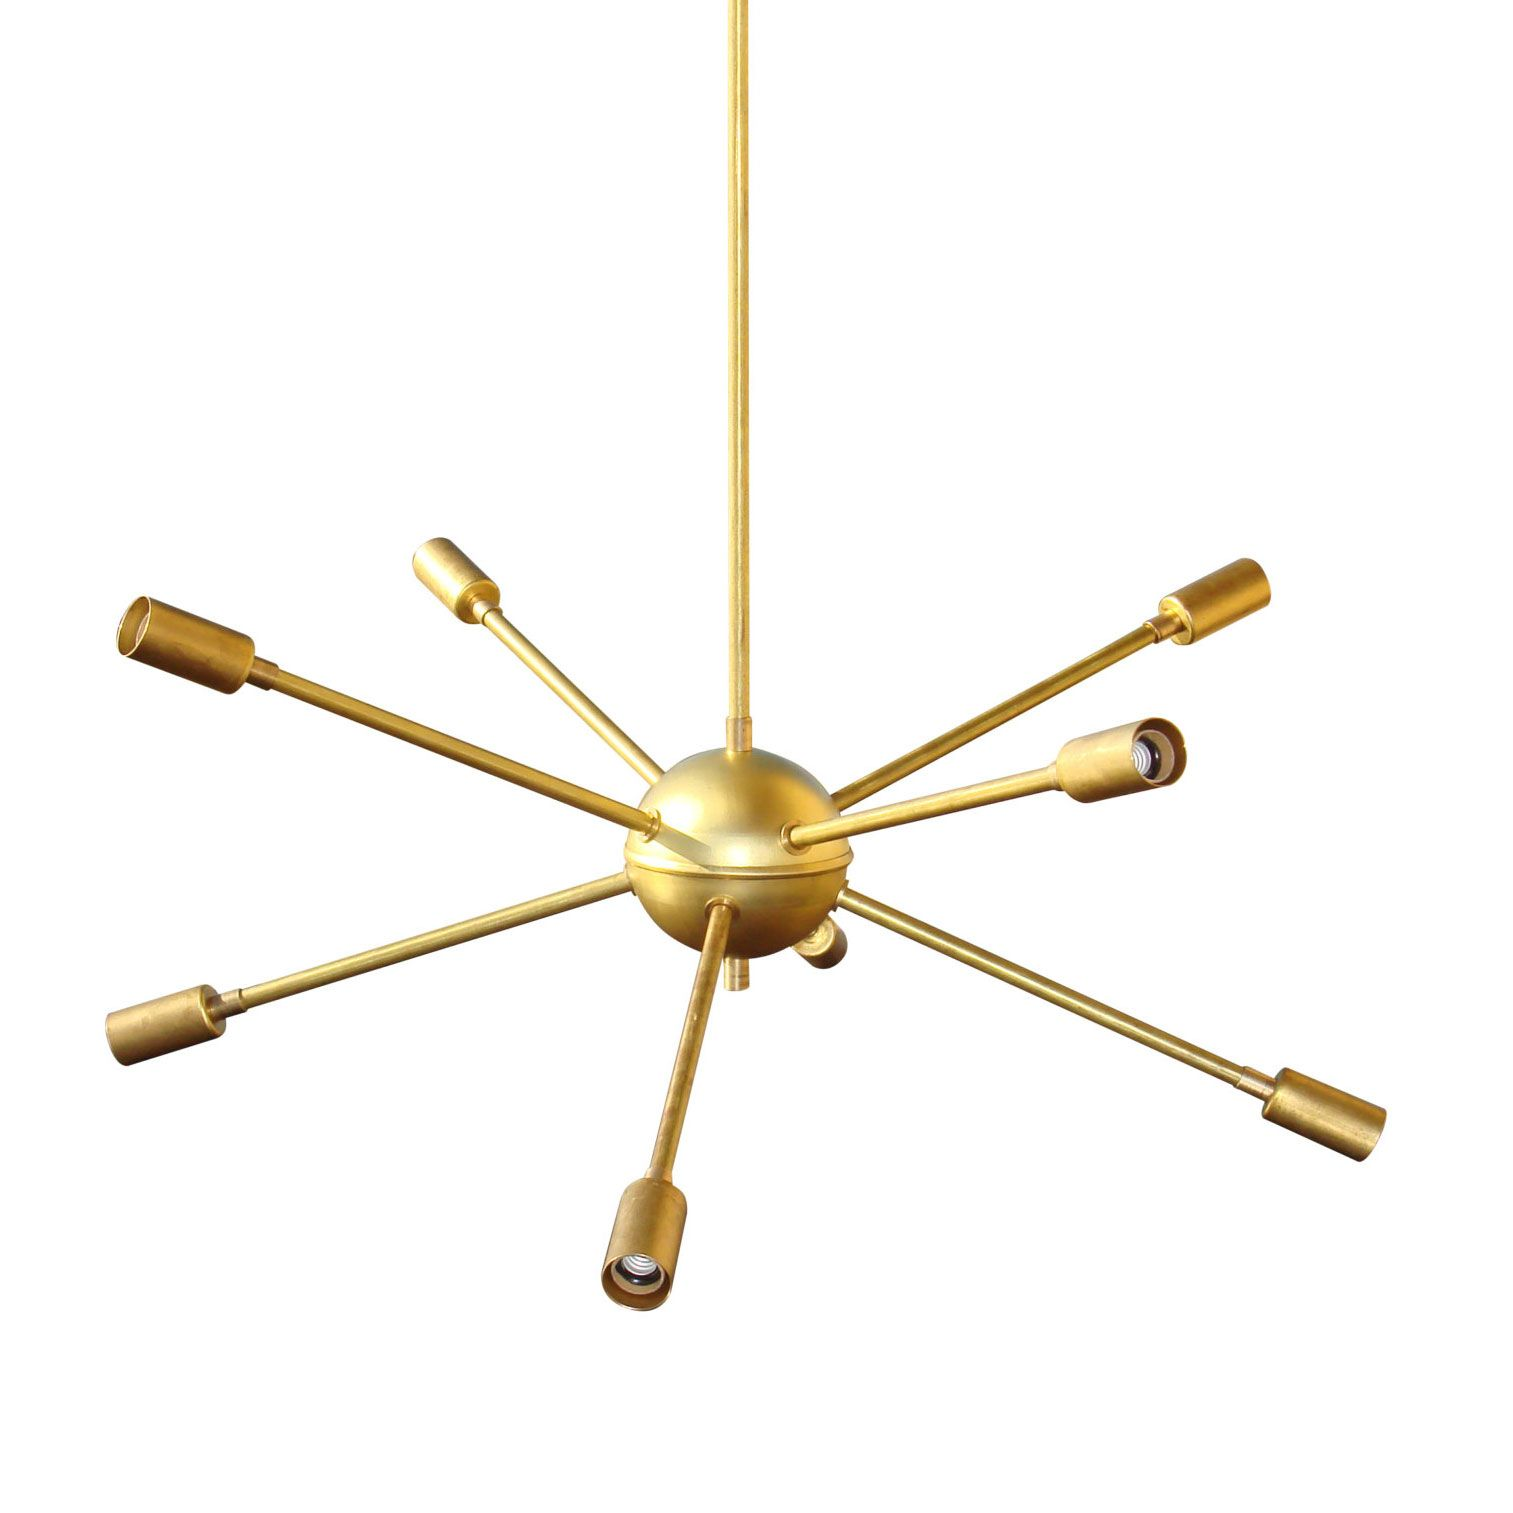 Brass Sputnik Chandelier: 1000+ images about Sputnik chandelier selection on Pinterest | The  chandelier, Sputnik chandelier and Furniture,Lighting